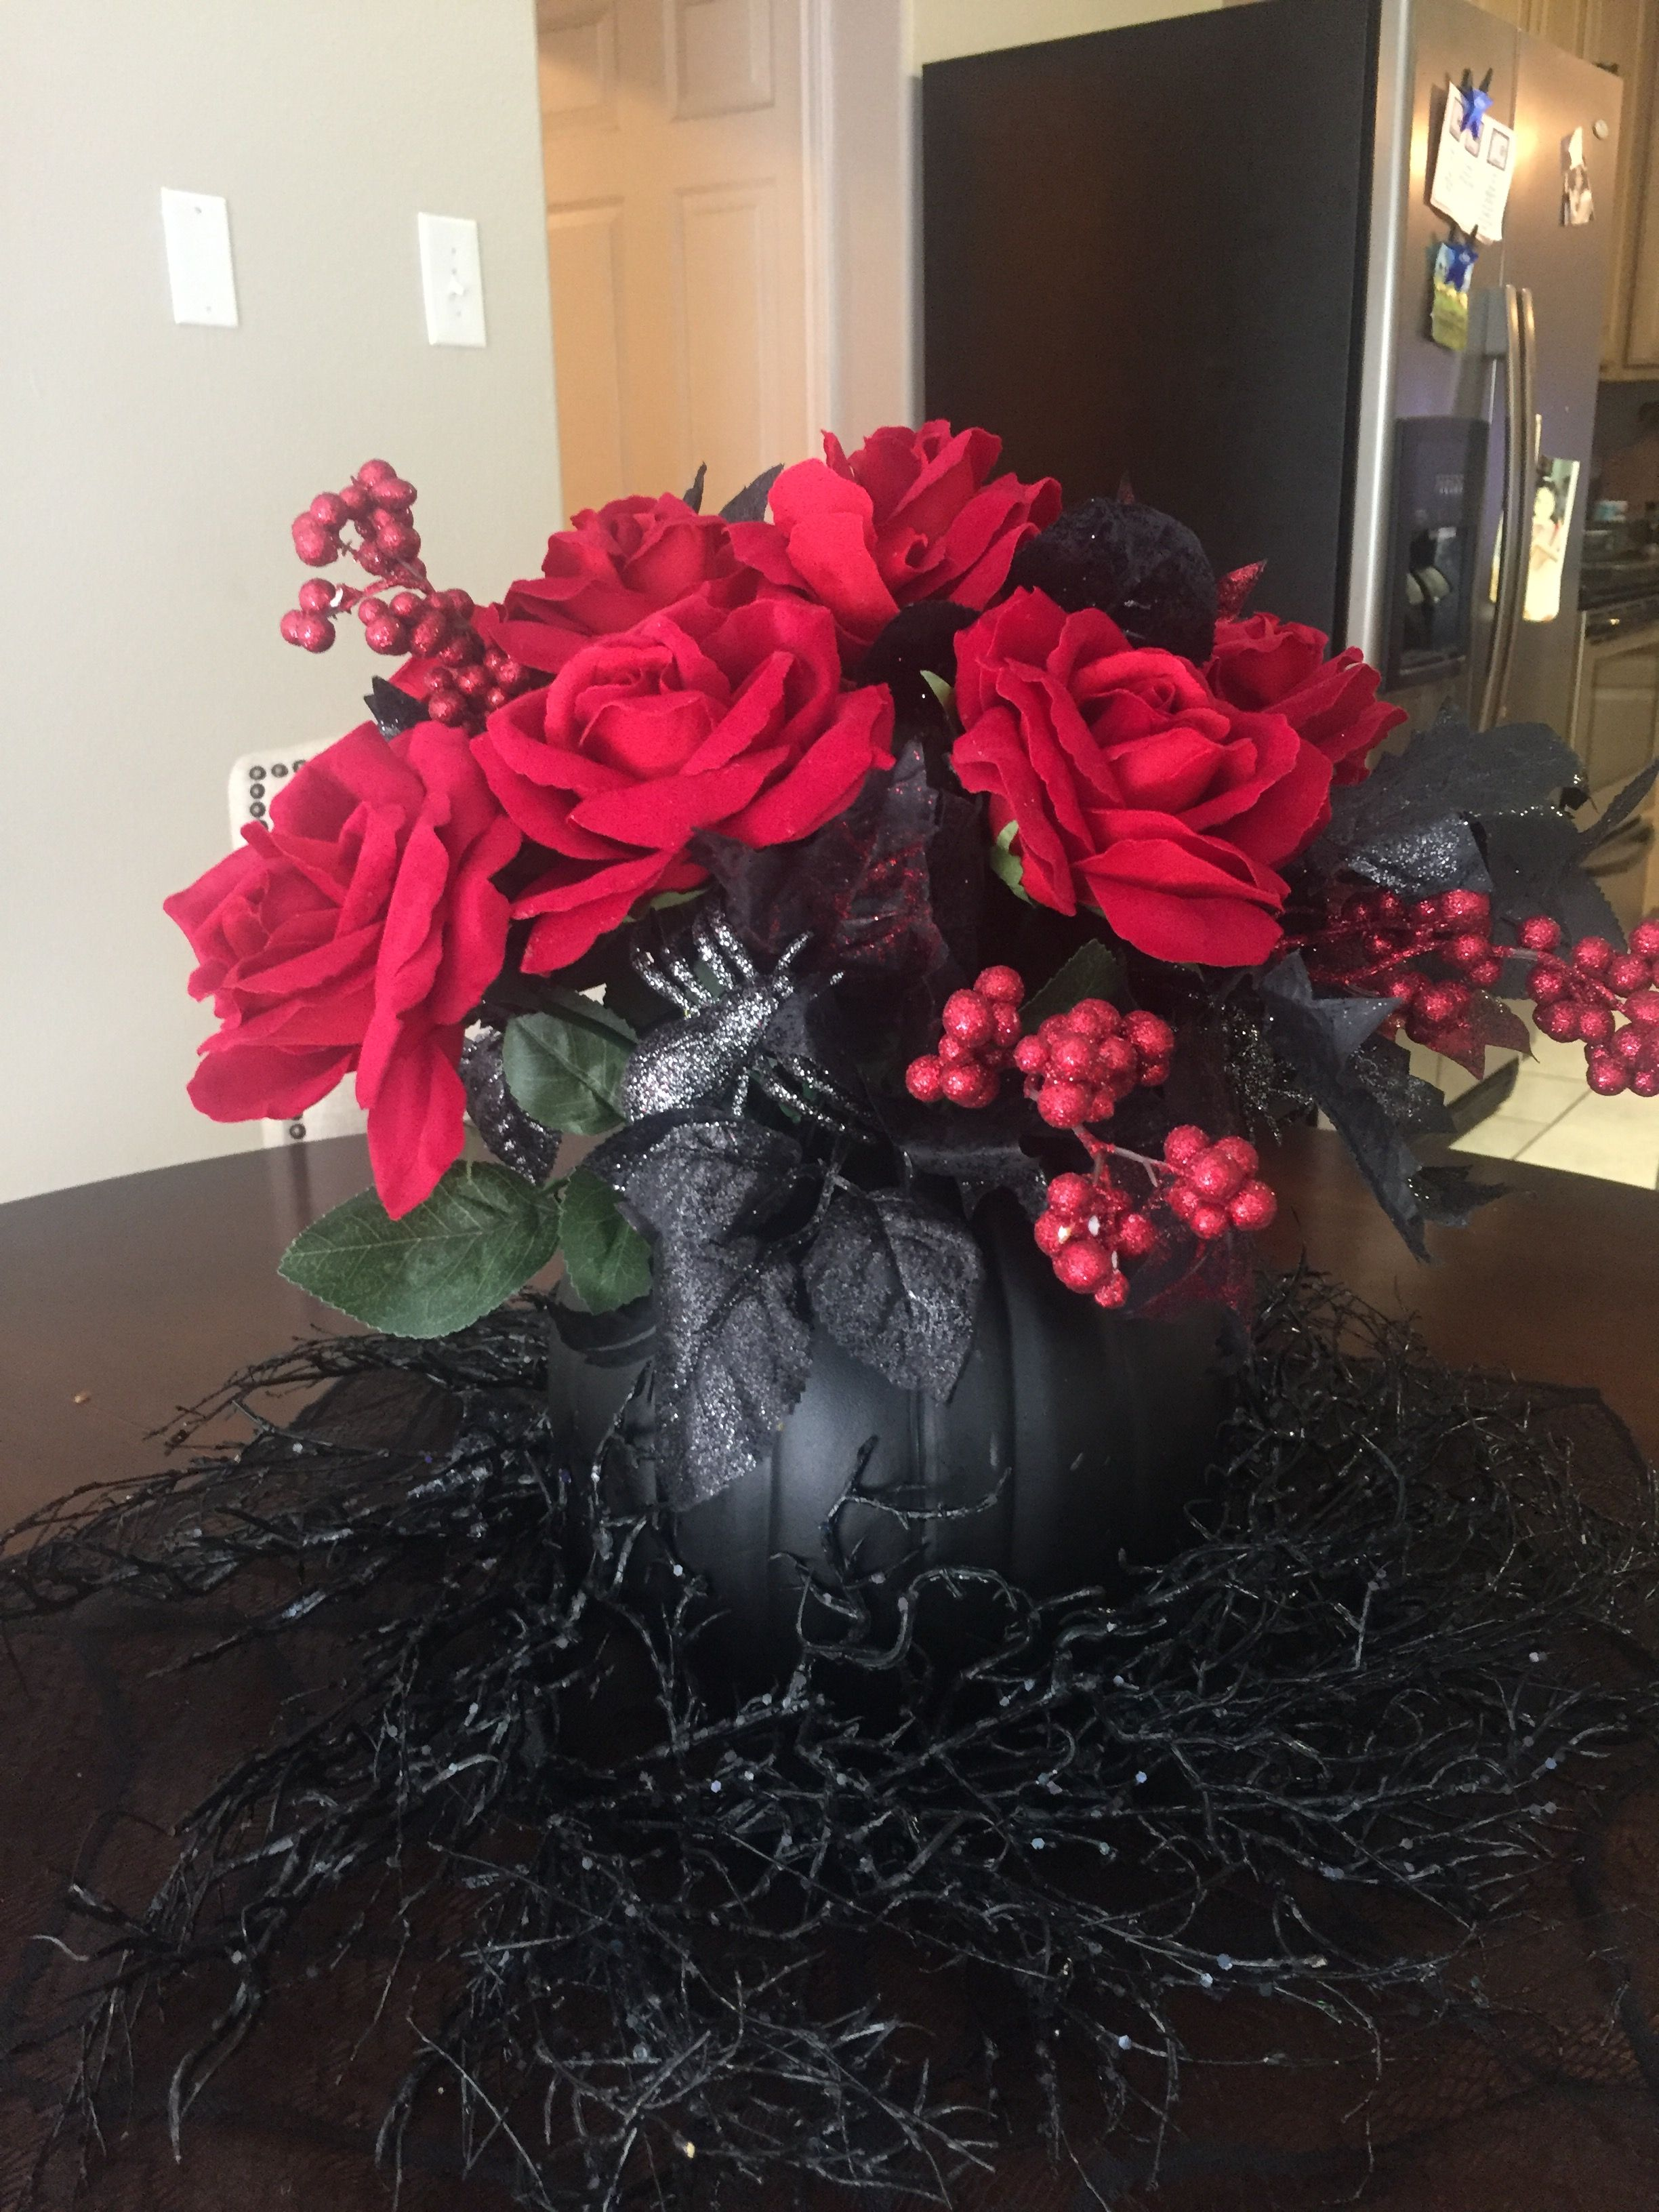 Halloween decor.  Black pumpkin, cut hole into pumpkin, added decorative black leaves with red berries, red roses, & a couple spiders to top off.